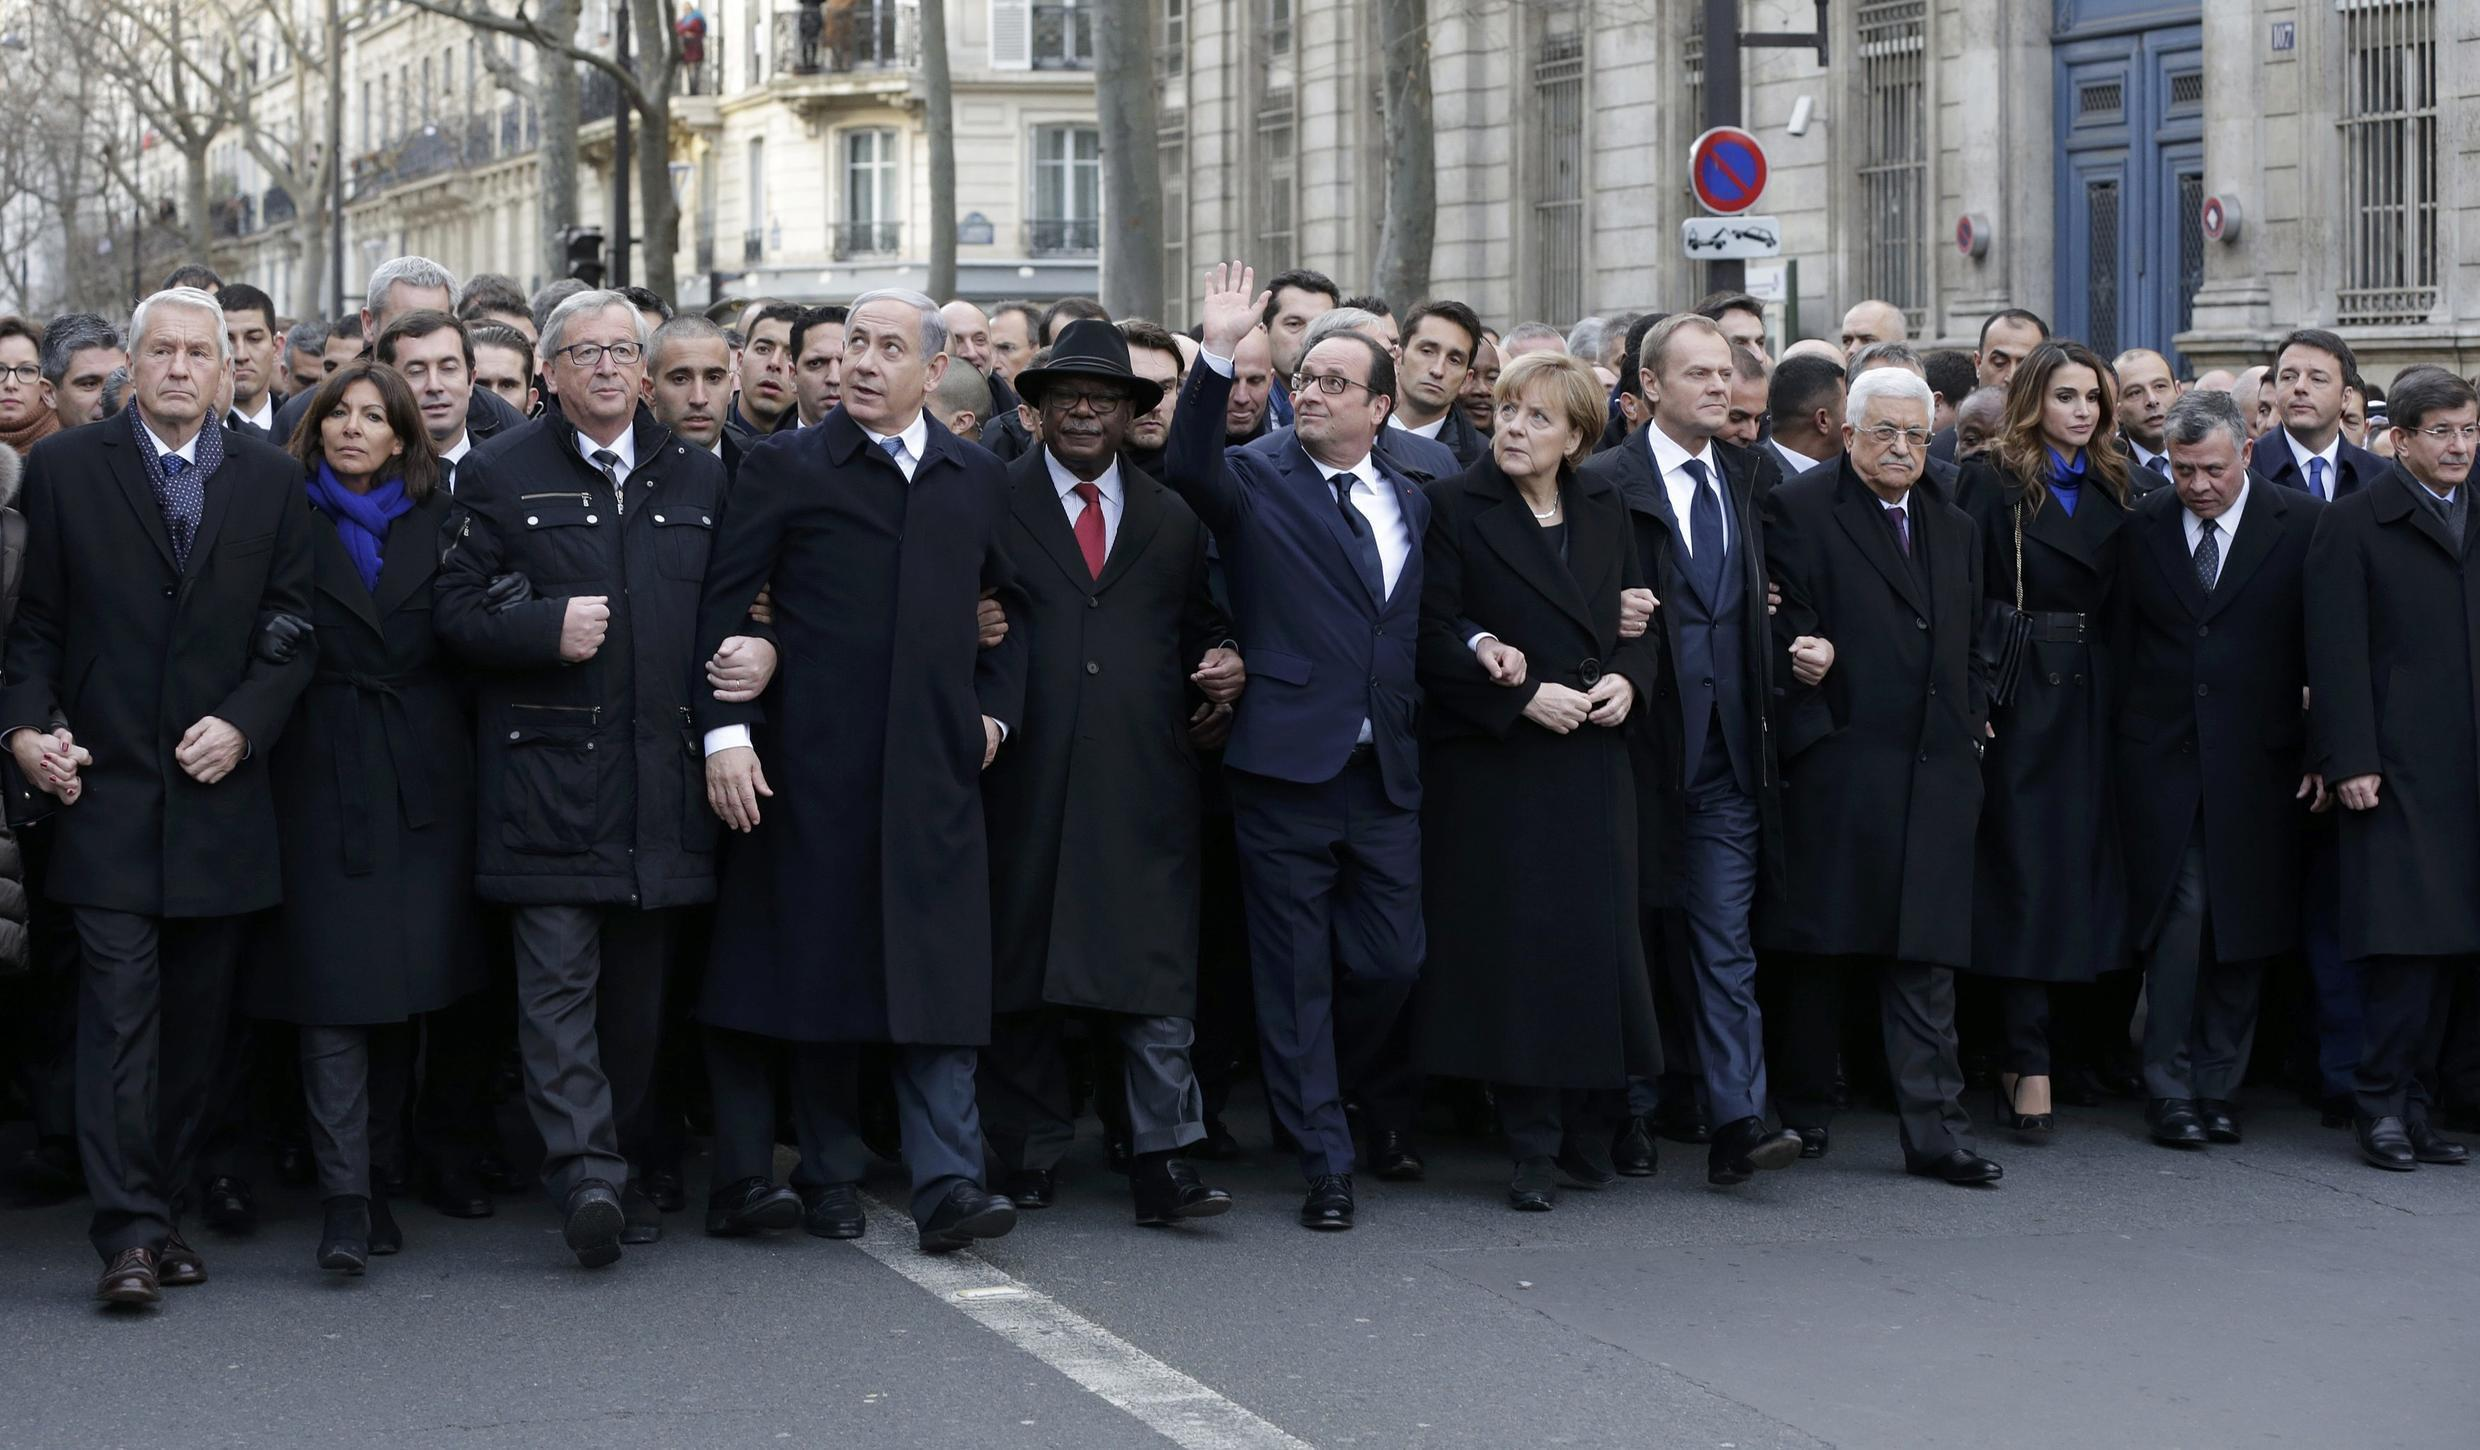 Dozens of world leaders join in the demonstration on the streets of Paris.